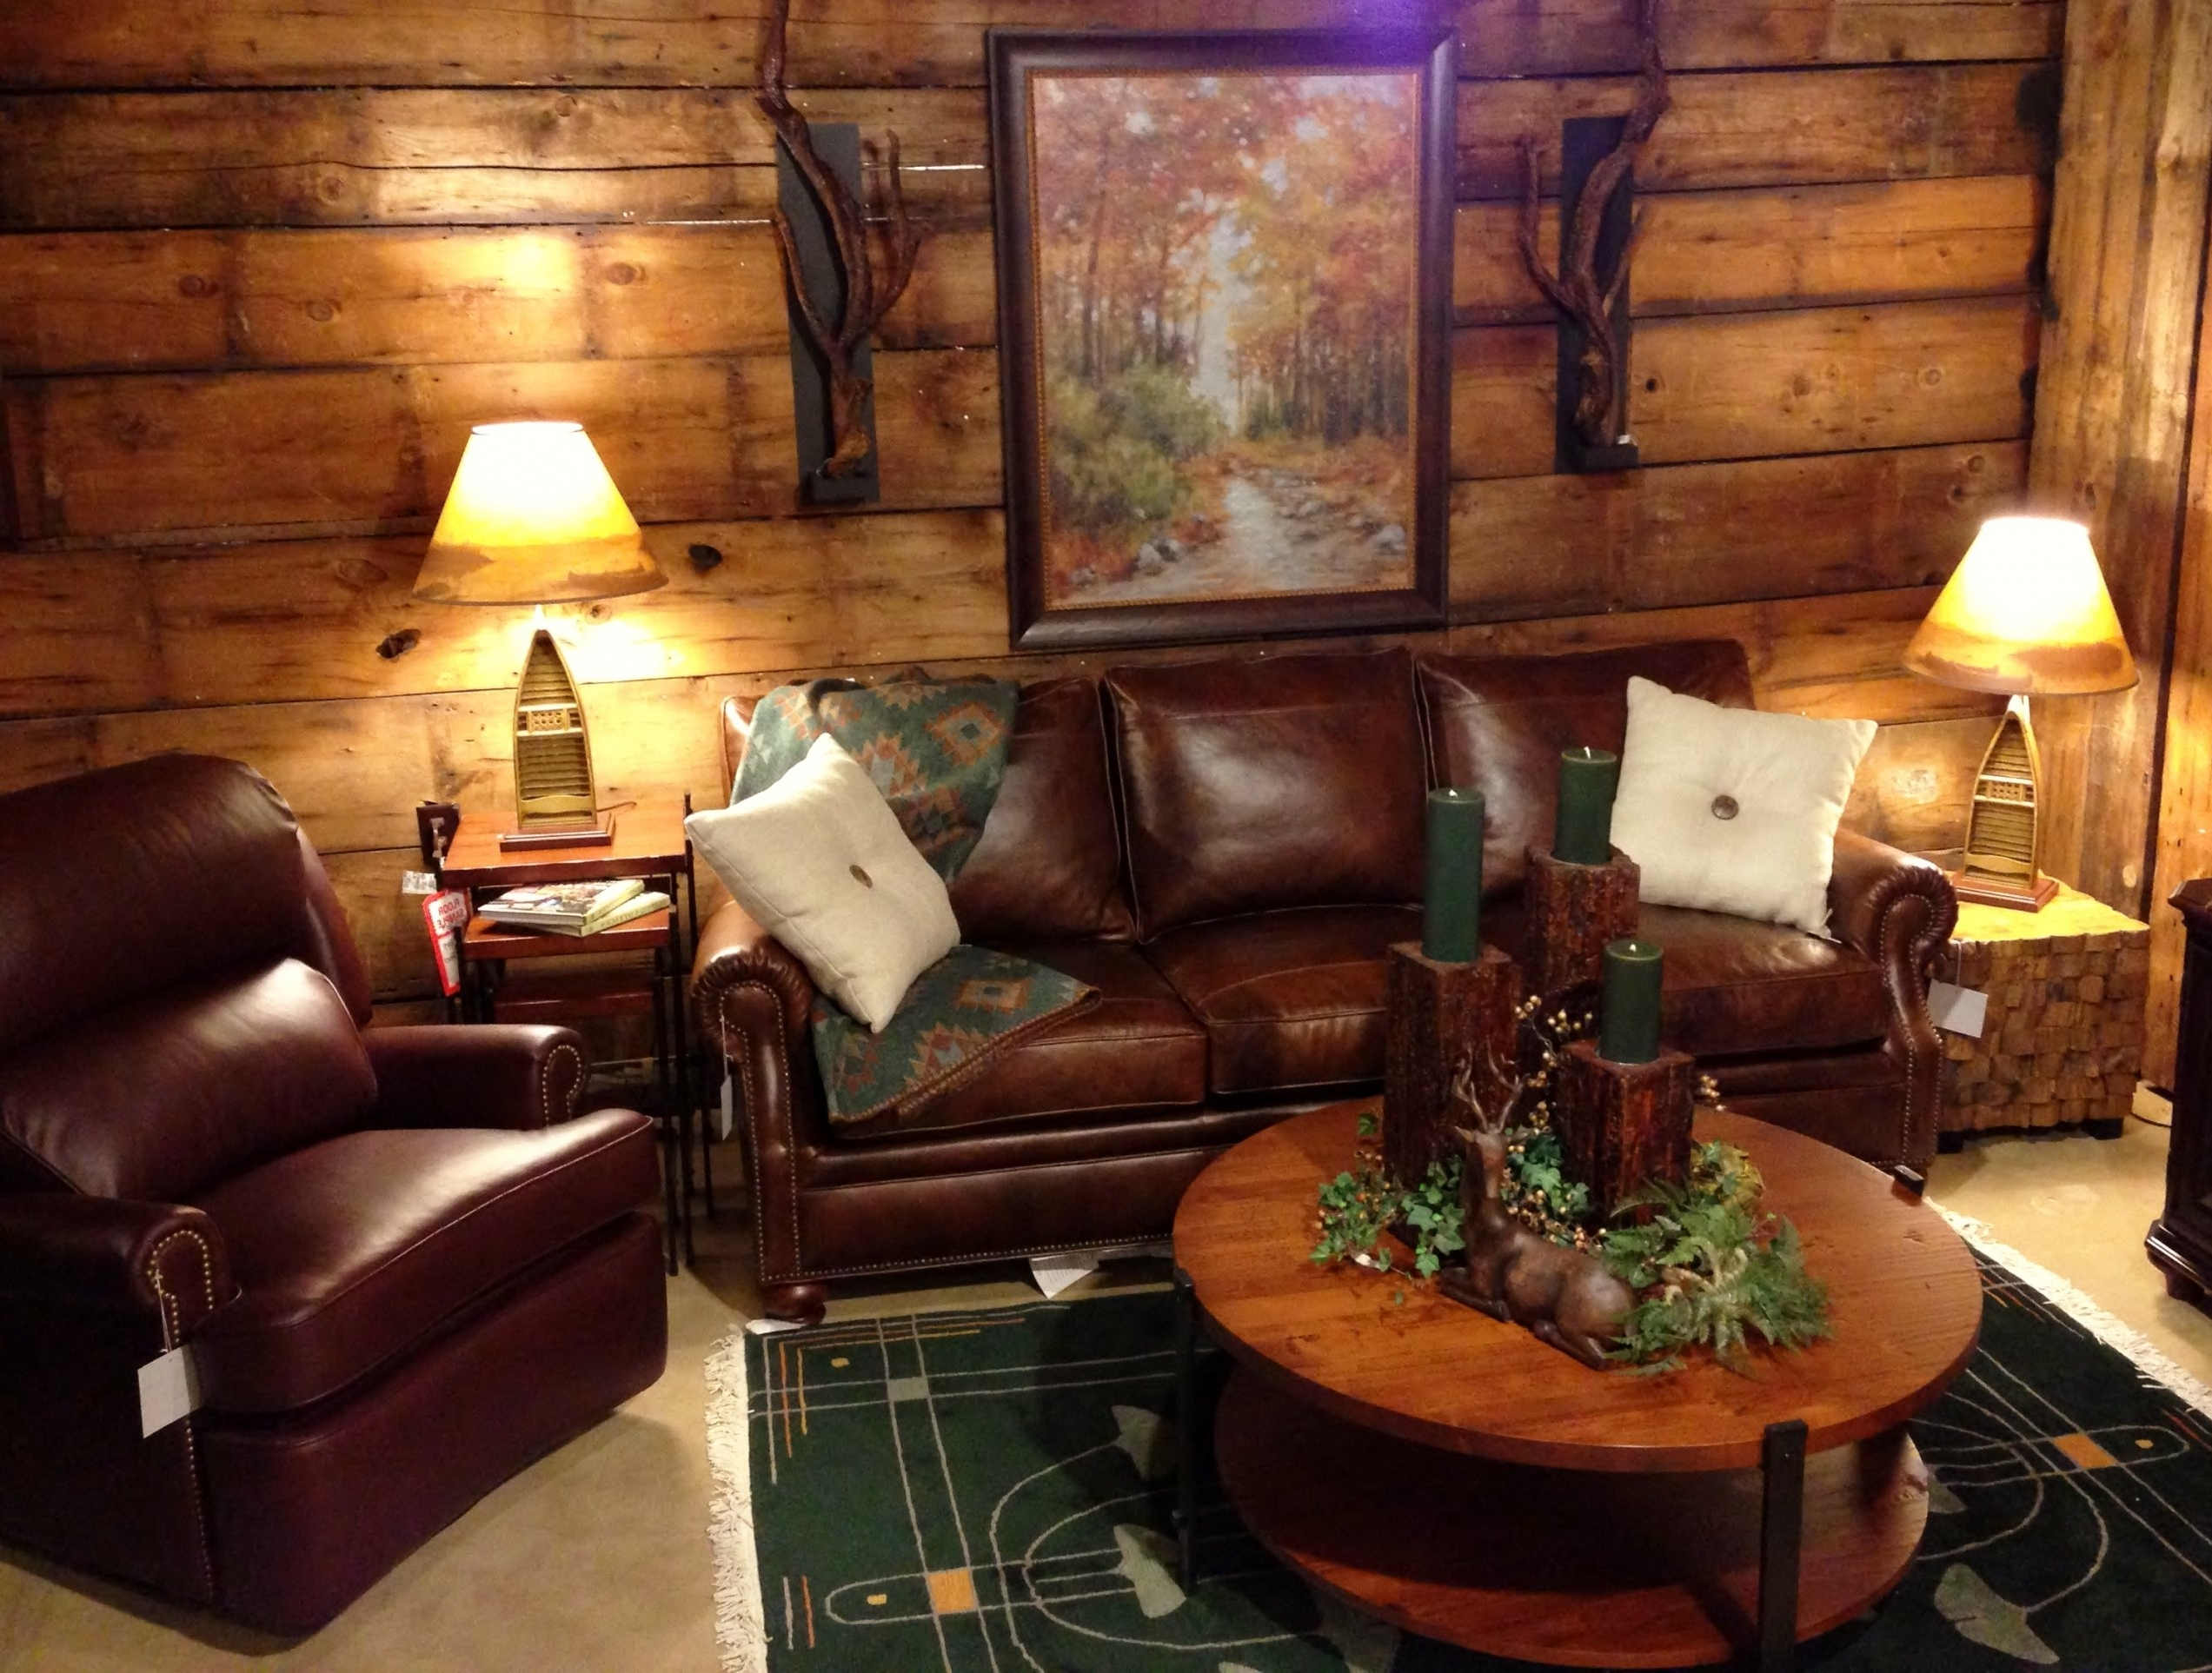 Rustic Living Room Table Lamps Throughout Famous Country Living Room Table Lamps (View 12 of 15)